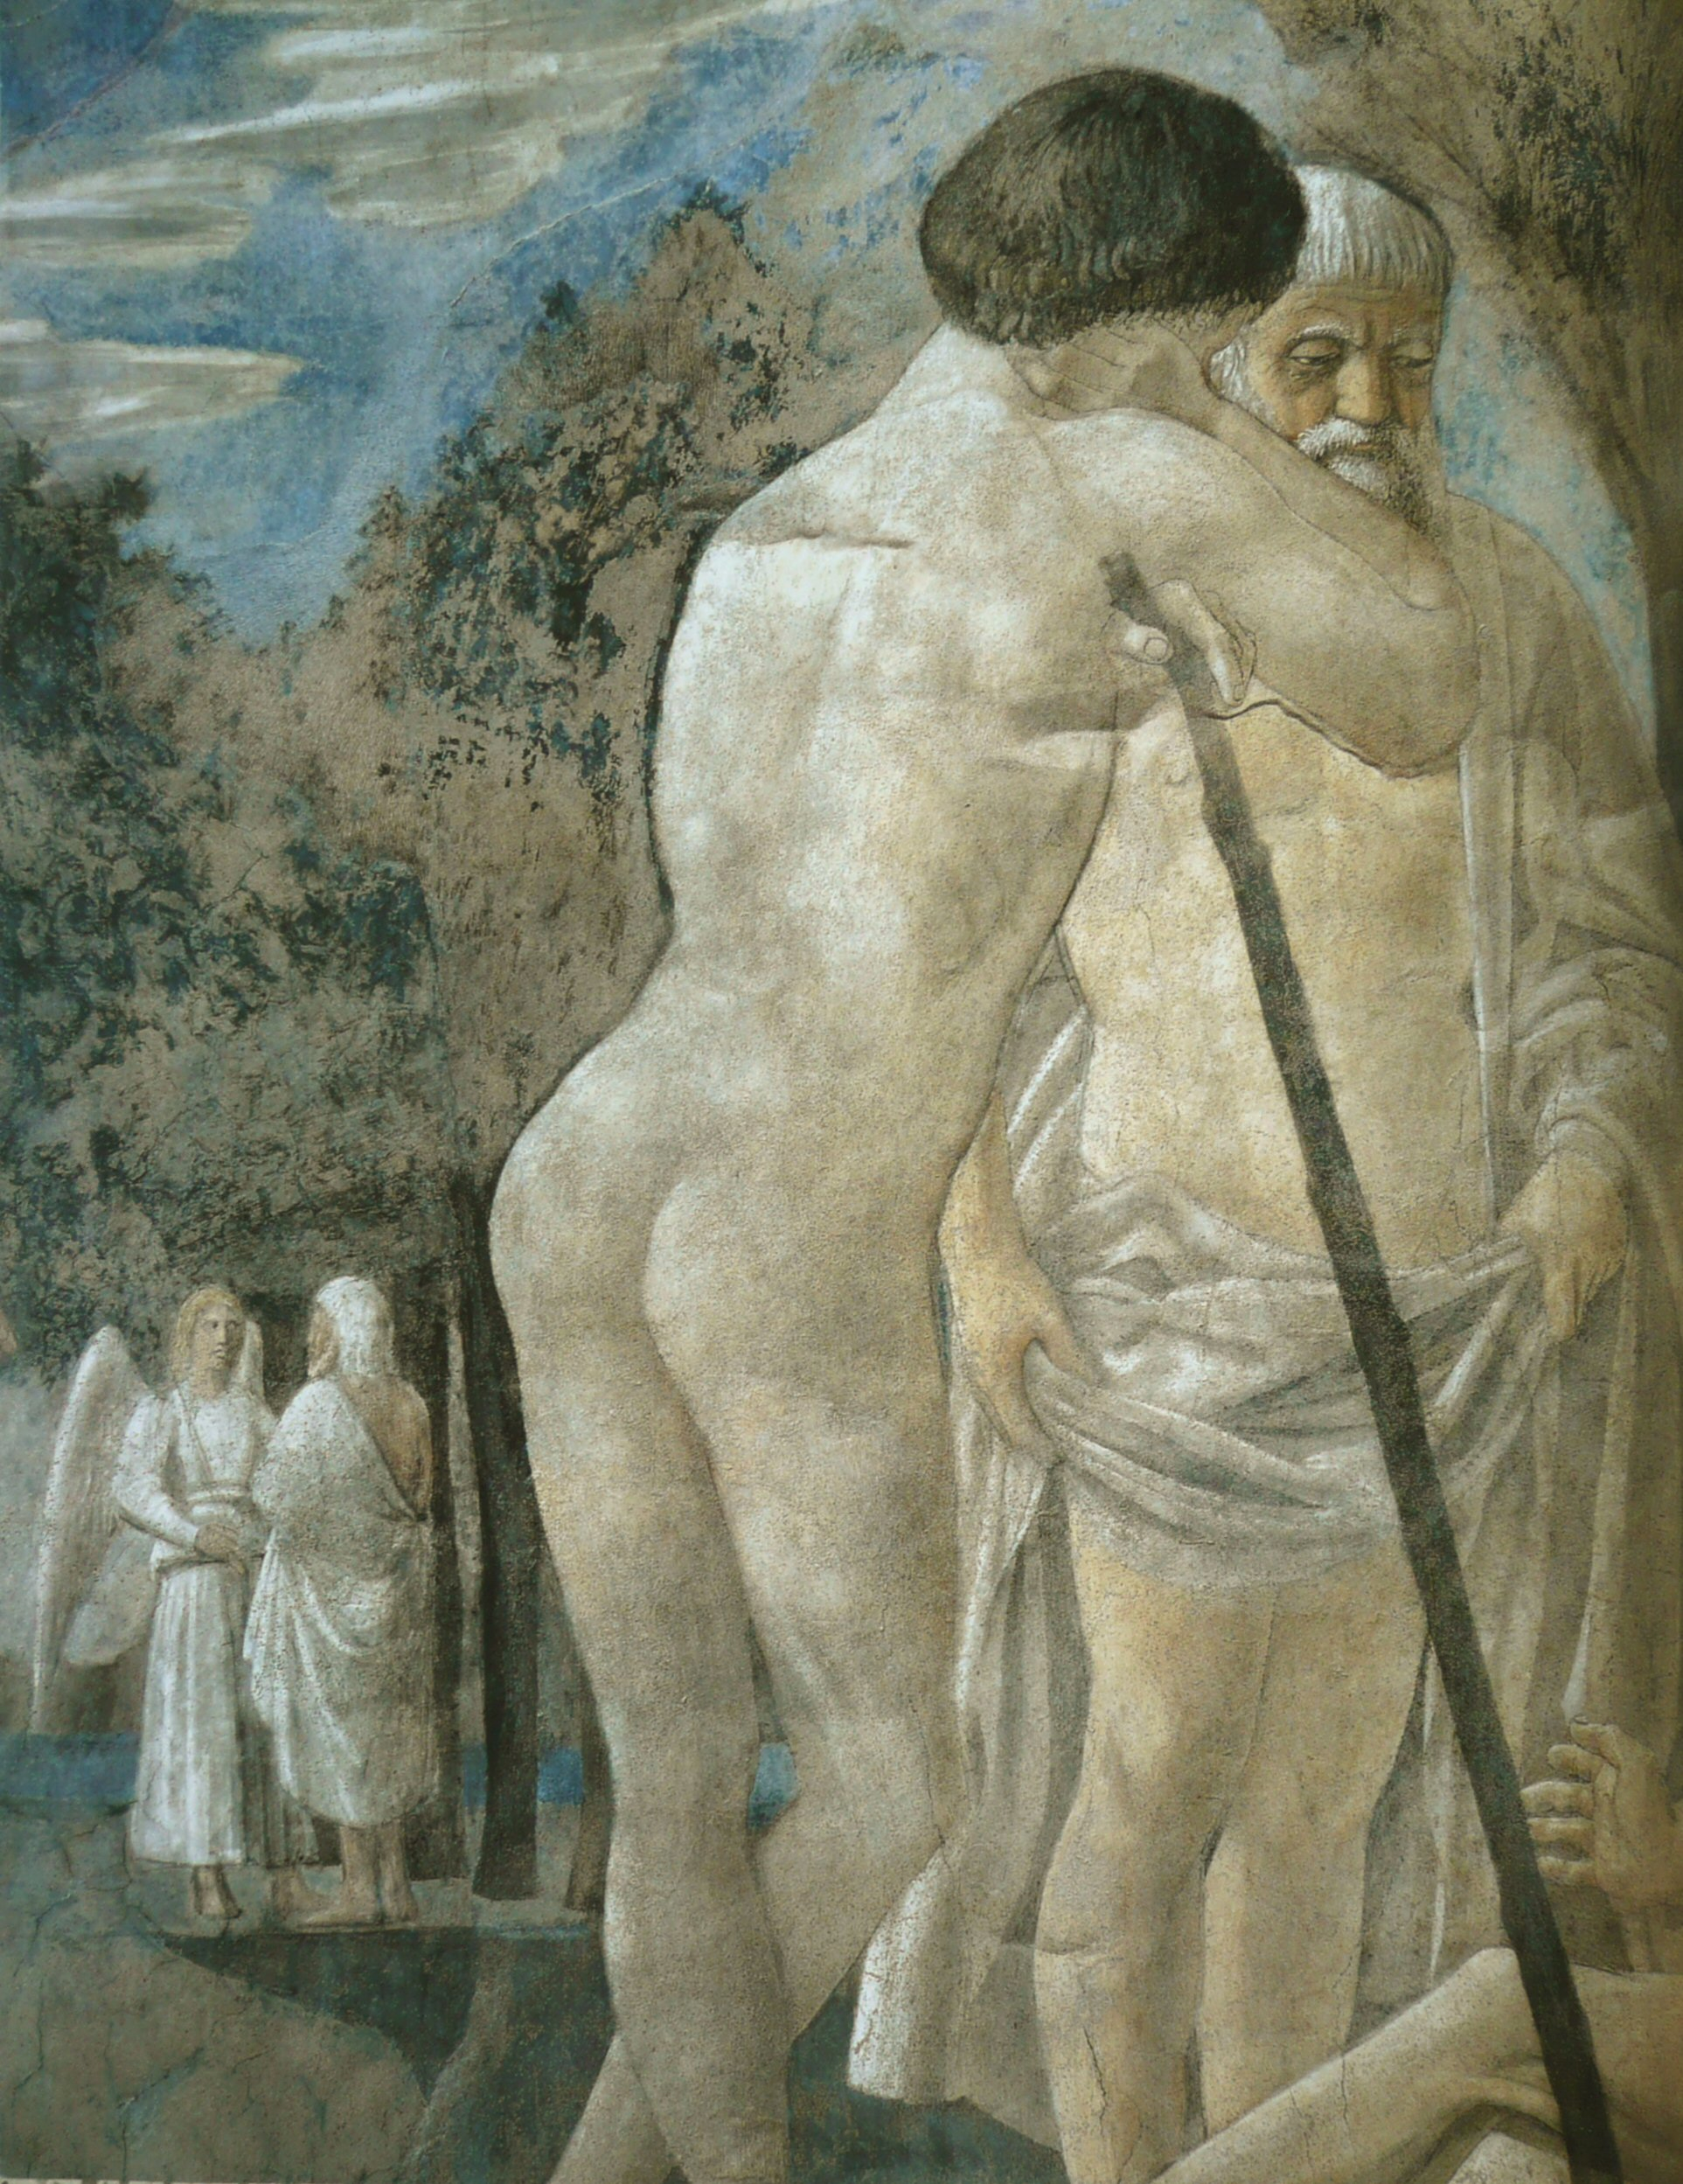 piero della fransesca herakles artwork Buy a piero della francesca print from our community of independent artists and iconic brands each piero della francesca art print is produced using archival inks, ships within 48 hours, and comes with a 30-day money back guarantee.